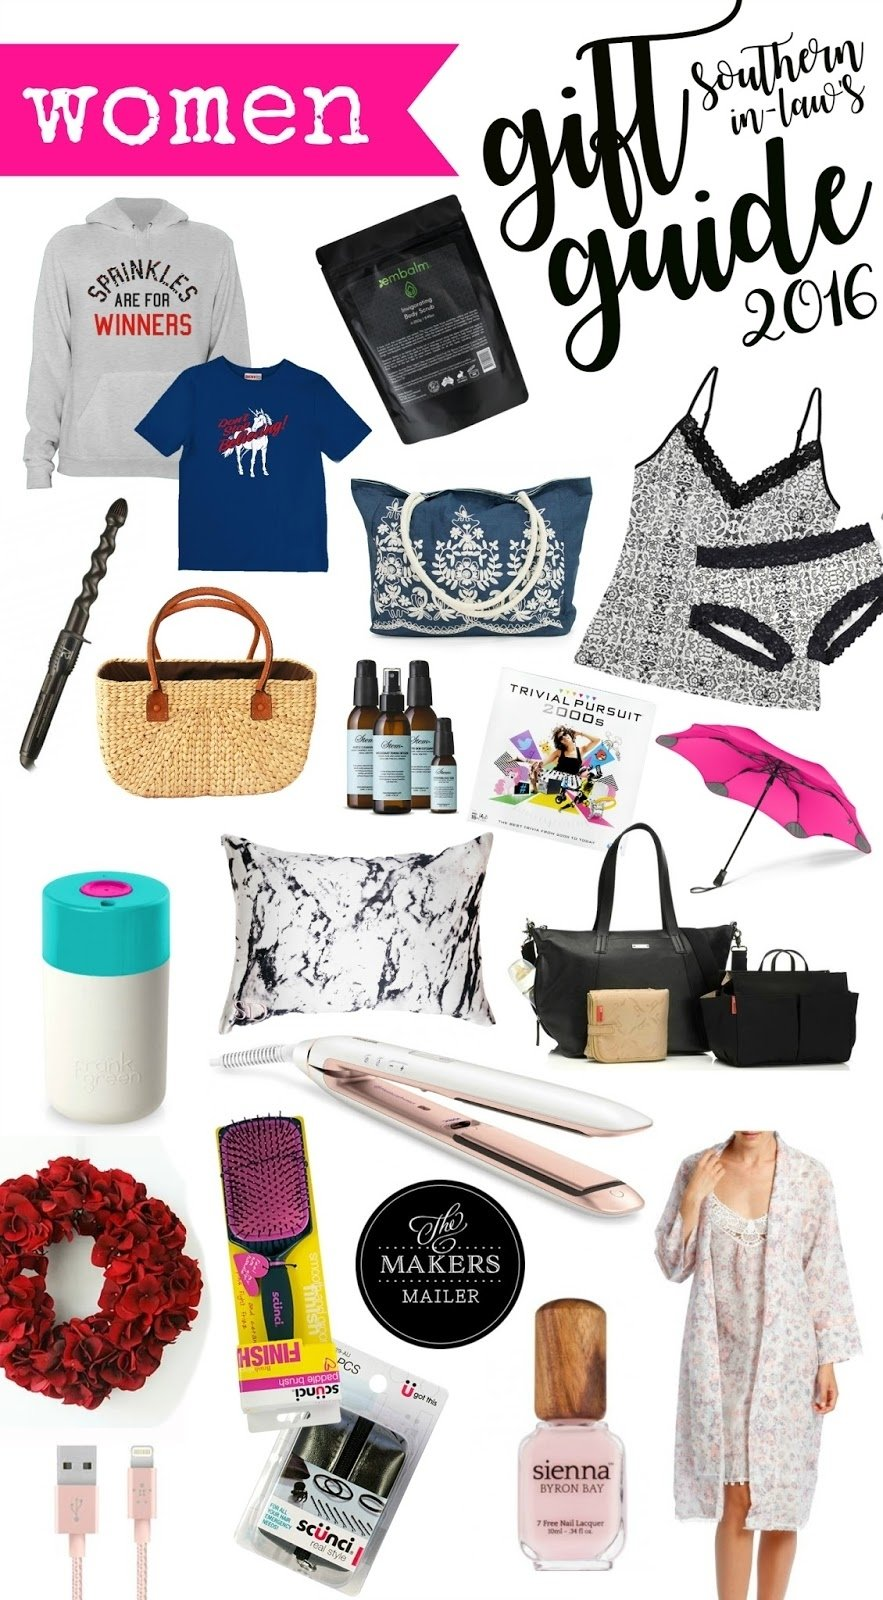 2016 women's christmas gift guide | christmas gift guide, stocking